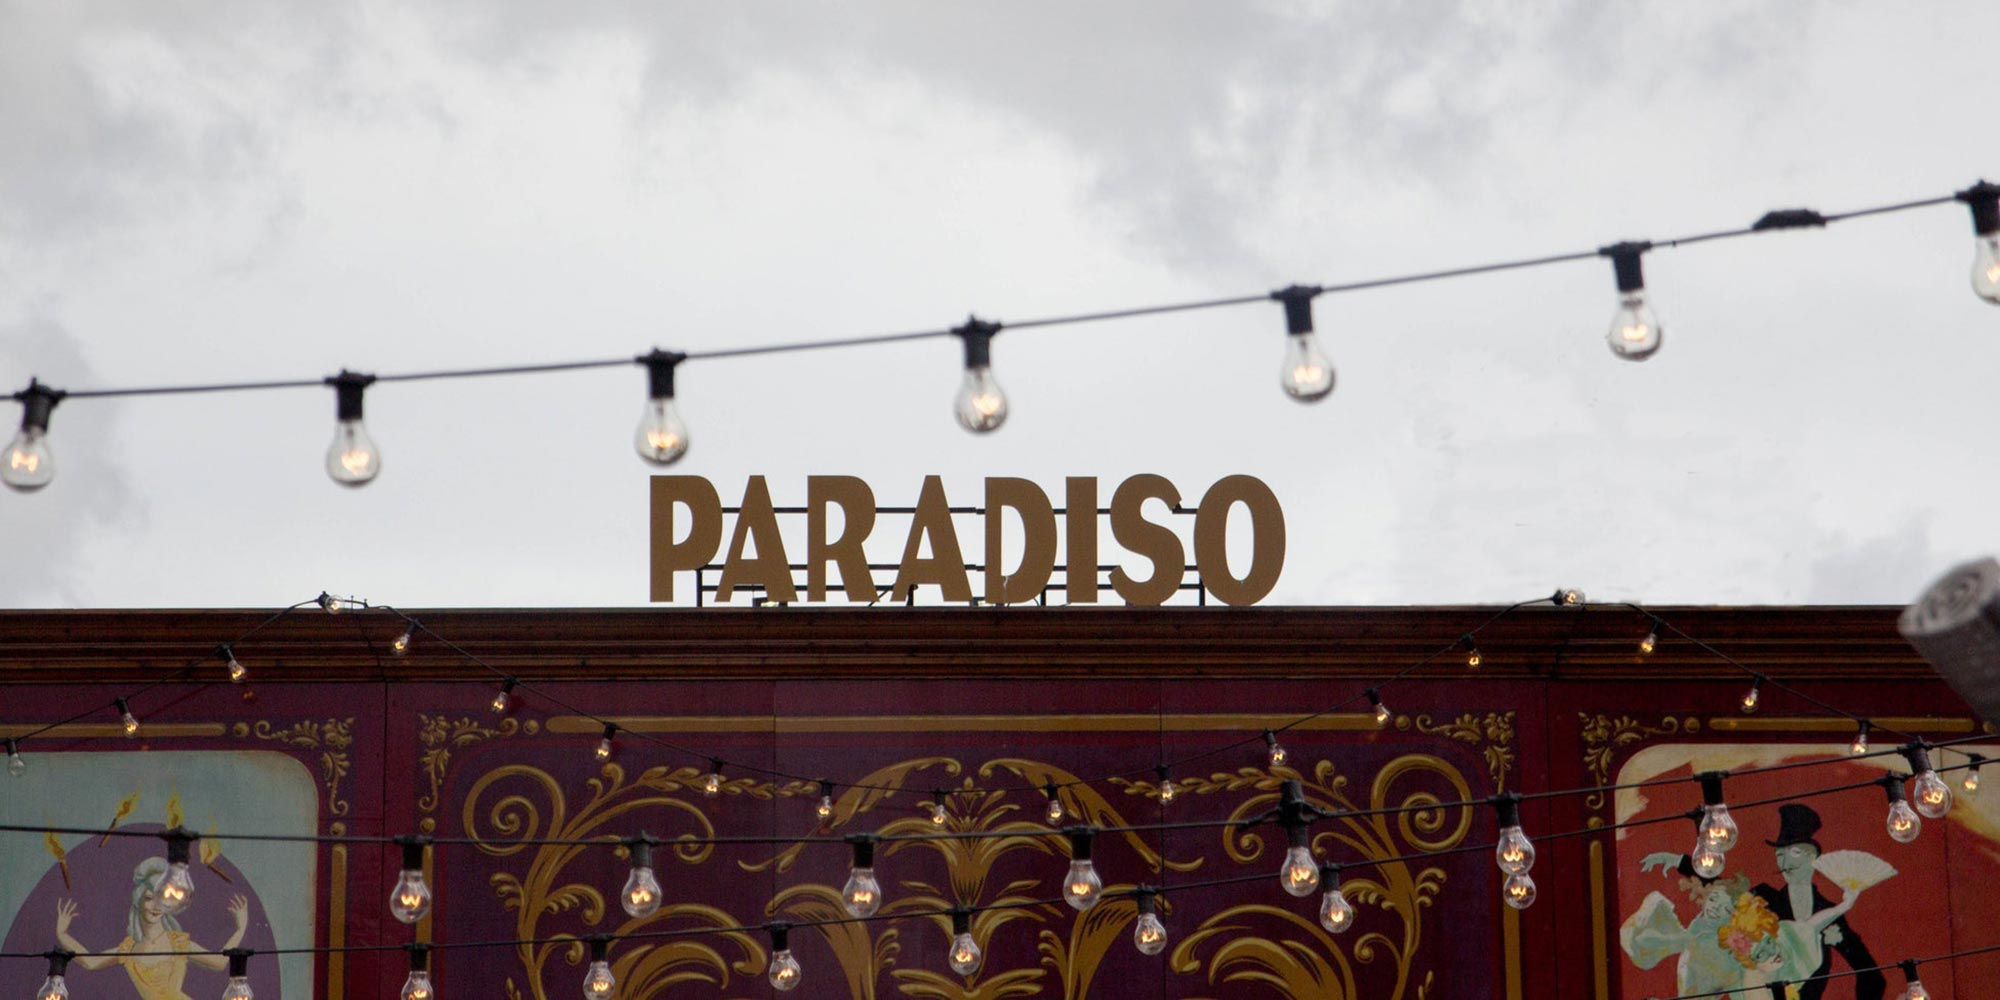 """Paradiso"" in large letters against a grey sky."